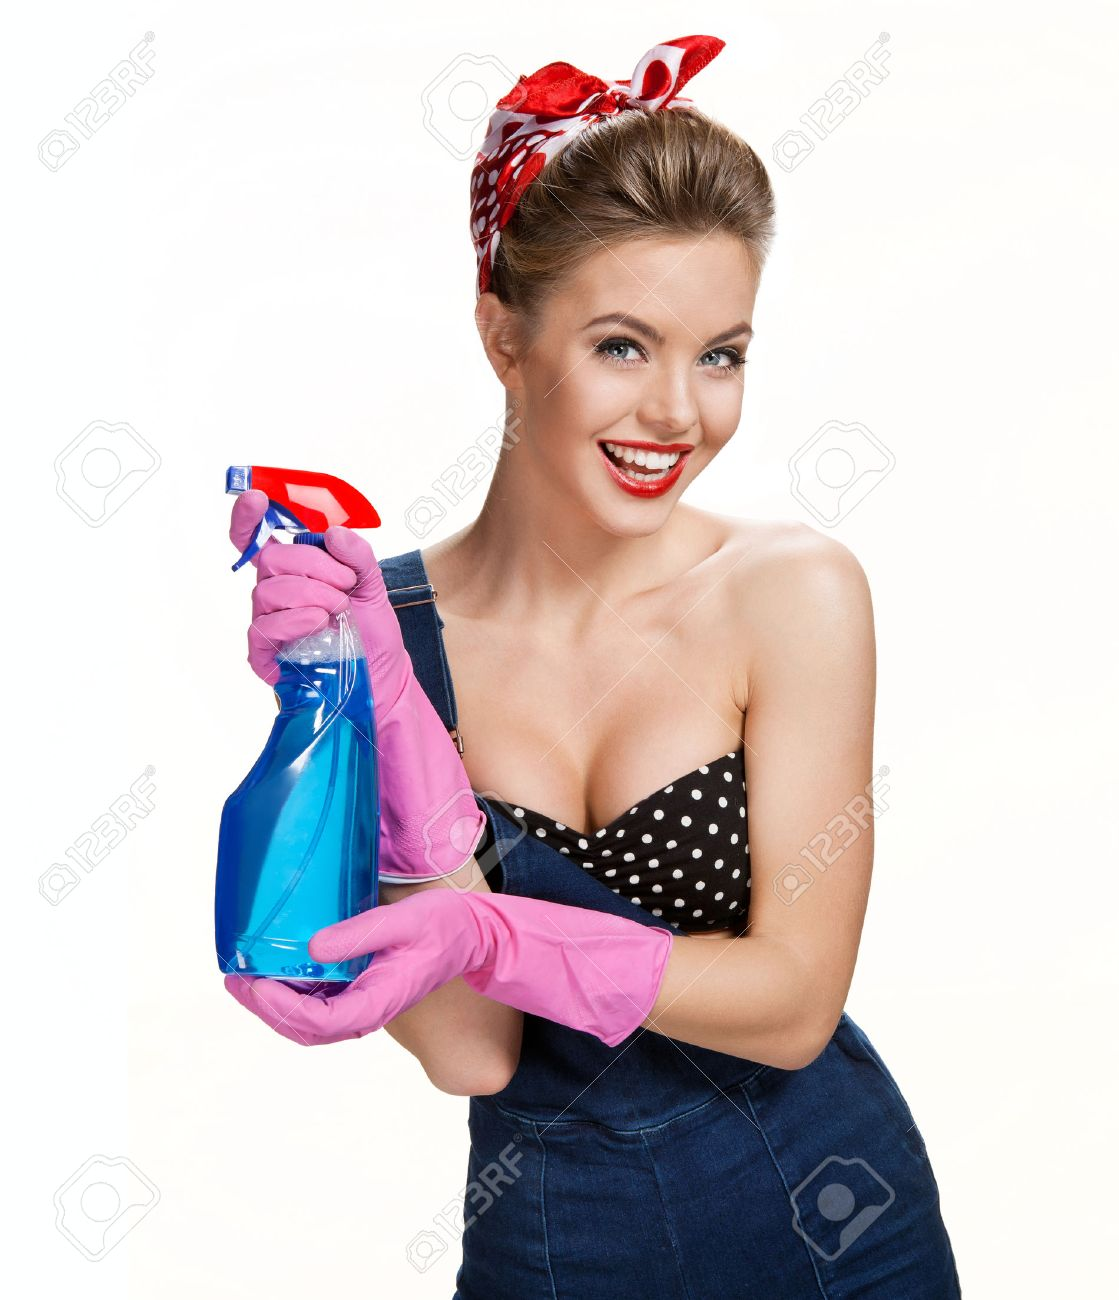 White gloves apron cleaning services - Sexy Maid Cleaning Lady Wearing Pink Rubber Protective Gloves Holding Spray Bottle Young Beautiful American